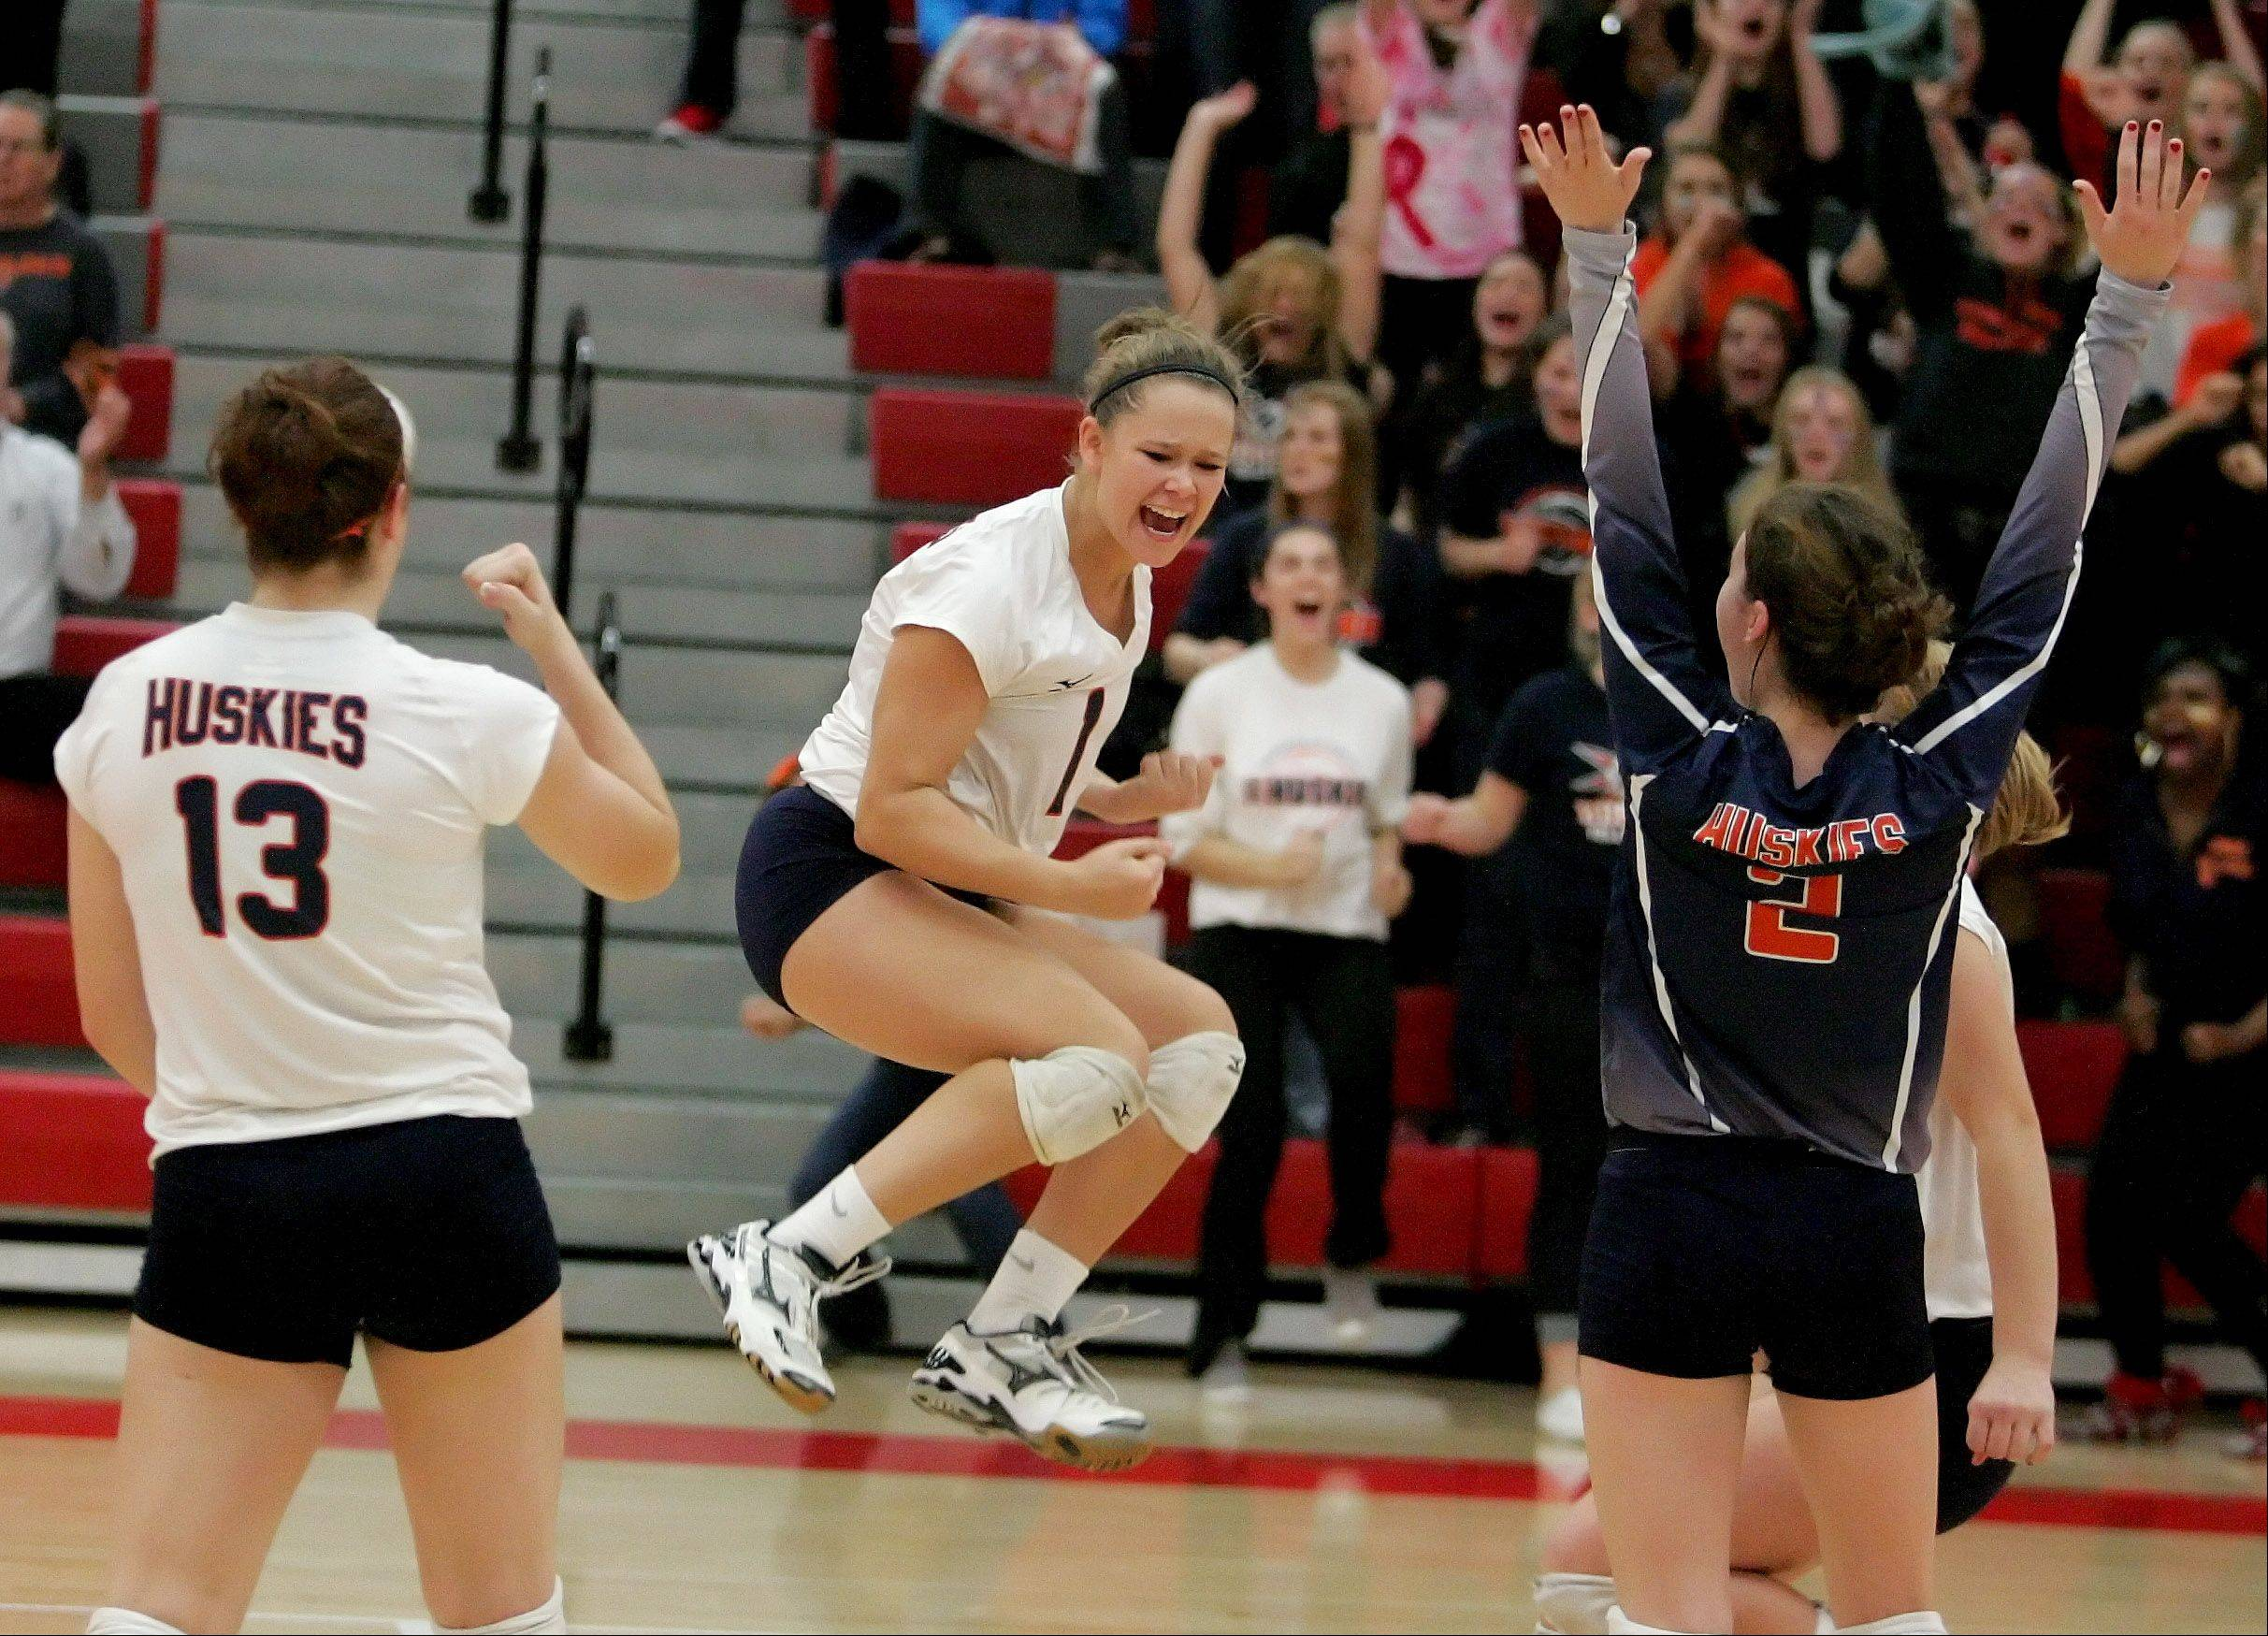 Naperville North reacts to winning the first game over Neuqua Valley in Class 4A girls volleyball regional semifinals at Naperville Central on Monday. Naperville North won the match 2-0.